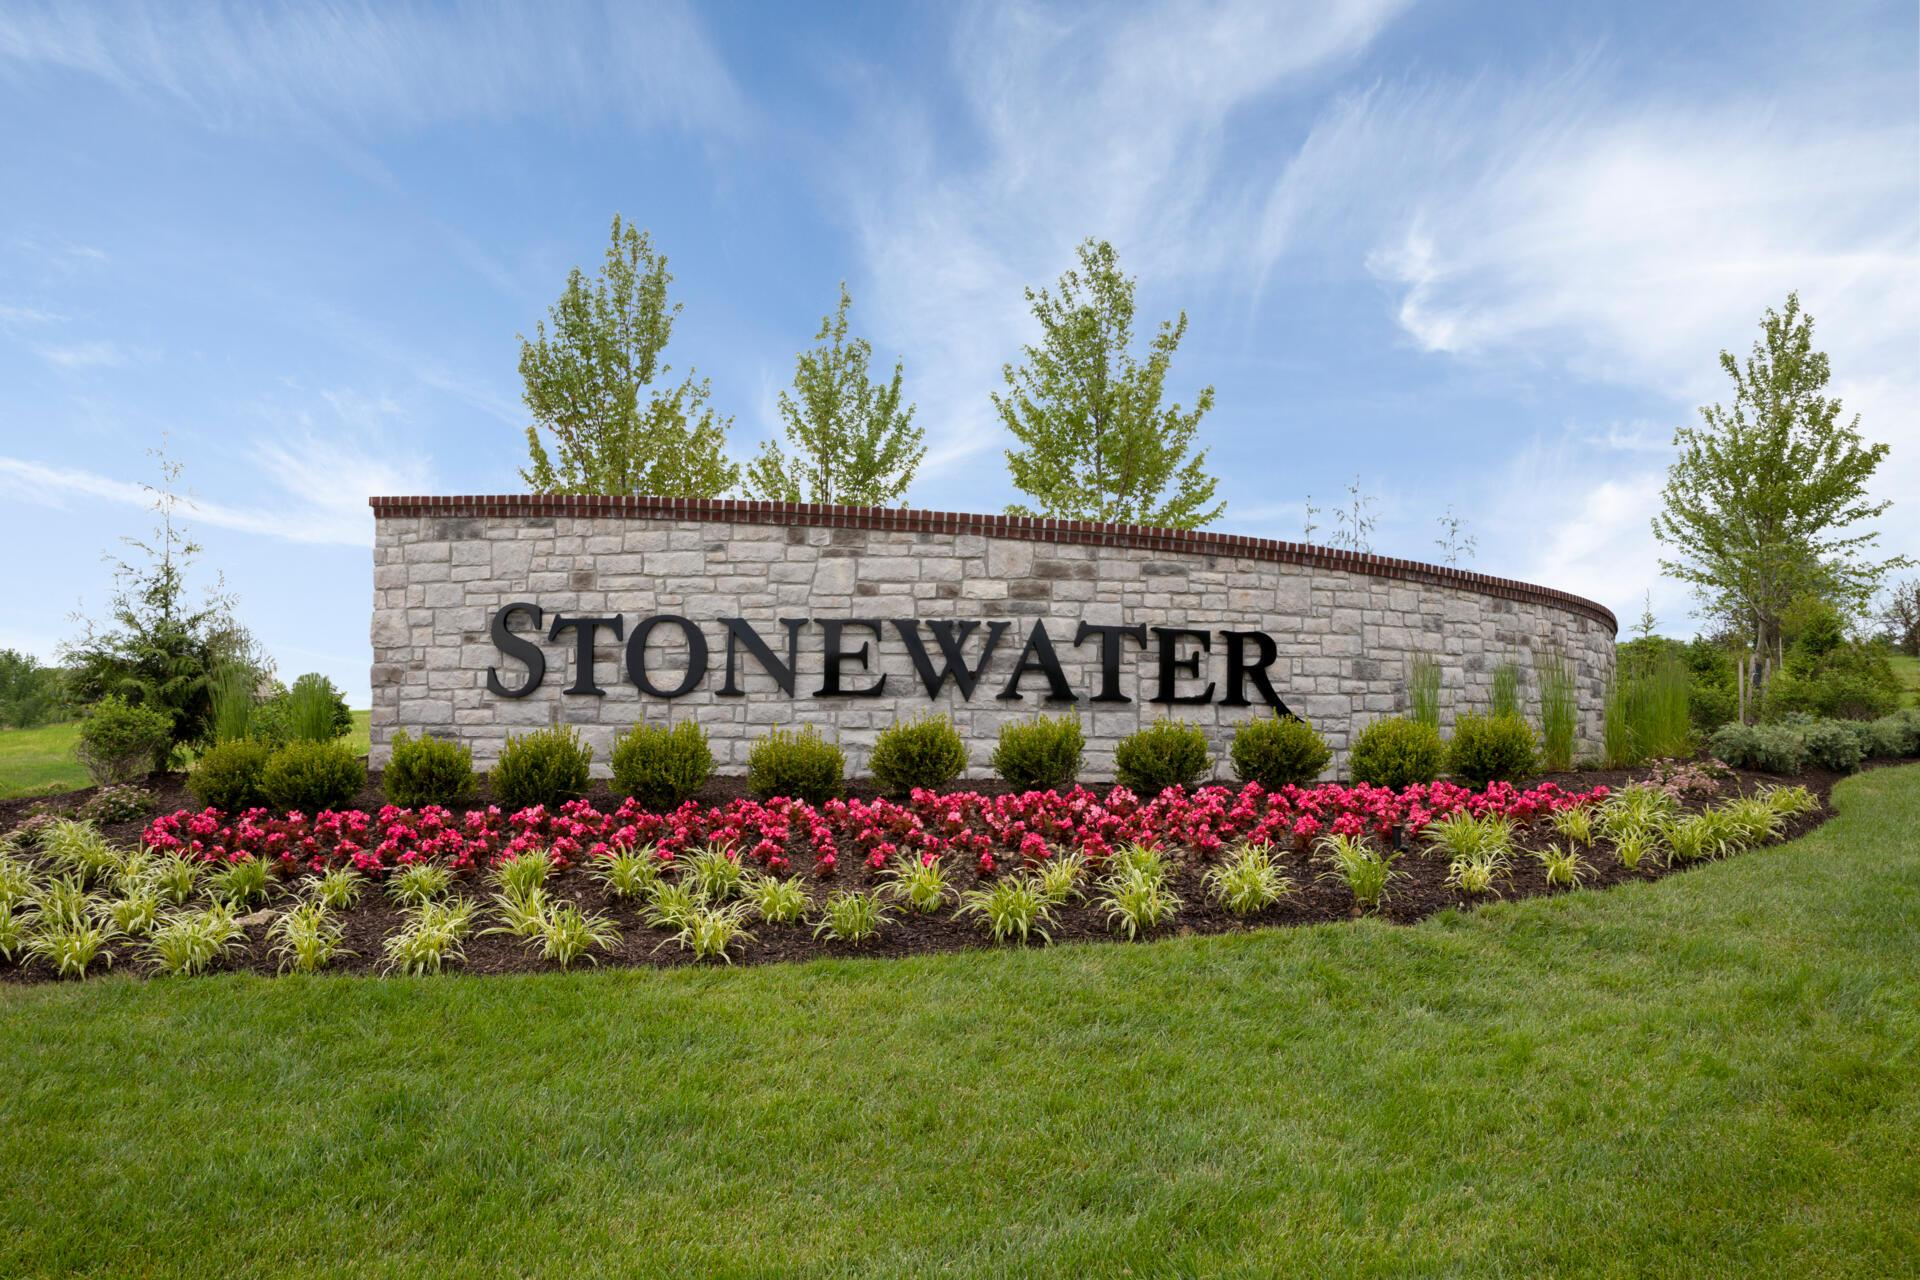 The Stonewater Entrance